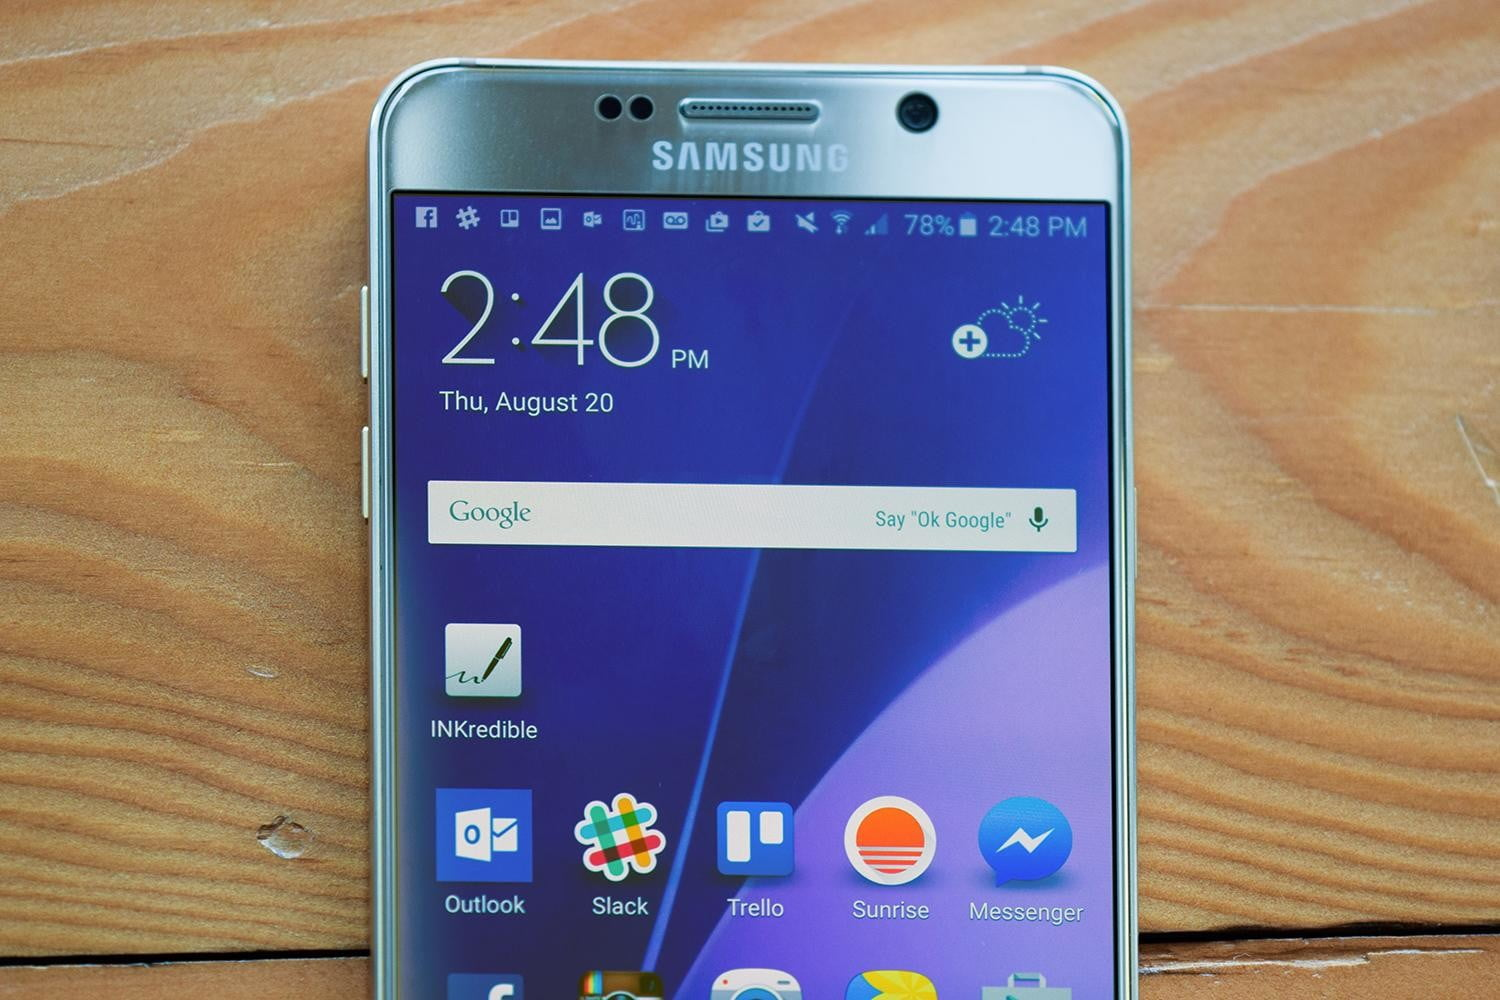 Galaxy Note 5 And S6 Edge Plus Sell Well In South Korea Digital Trends Smartphone Samsung